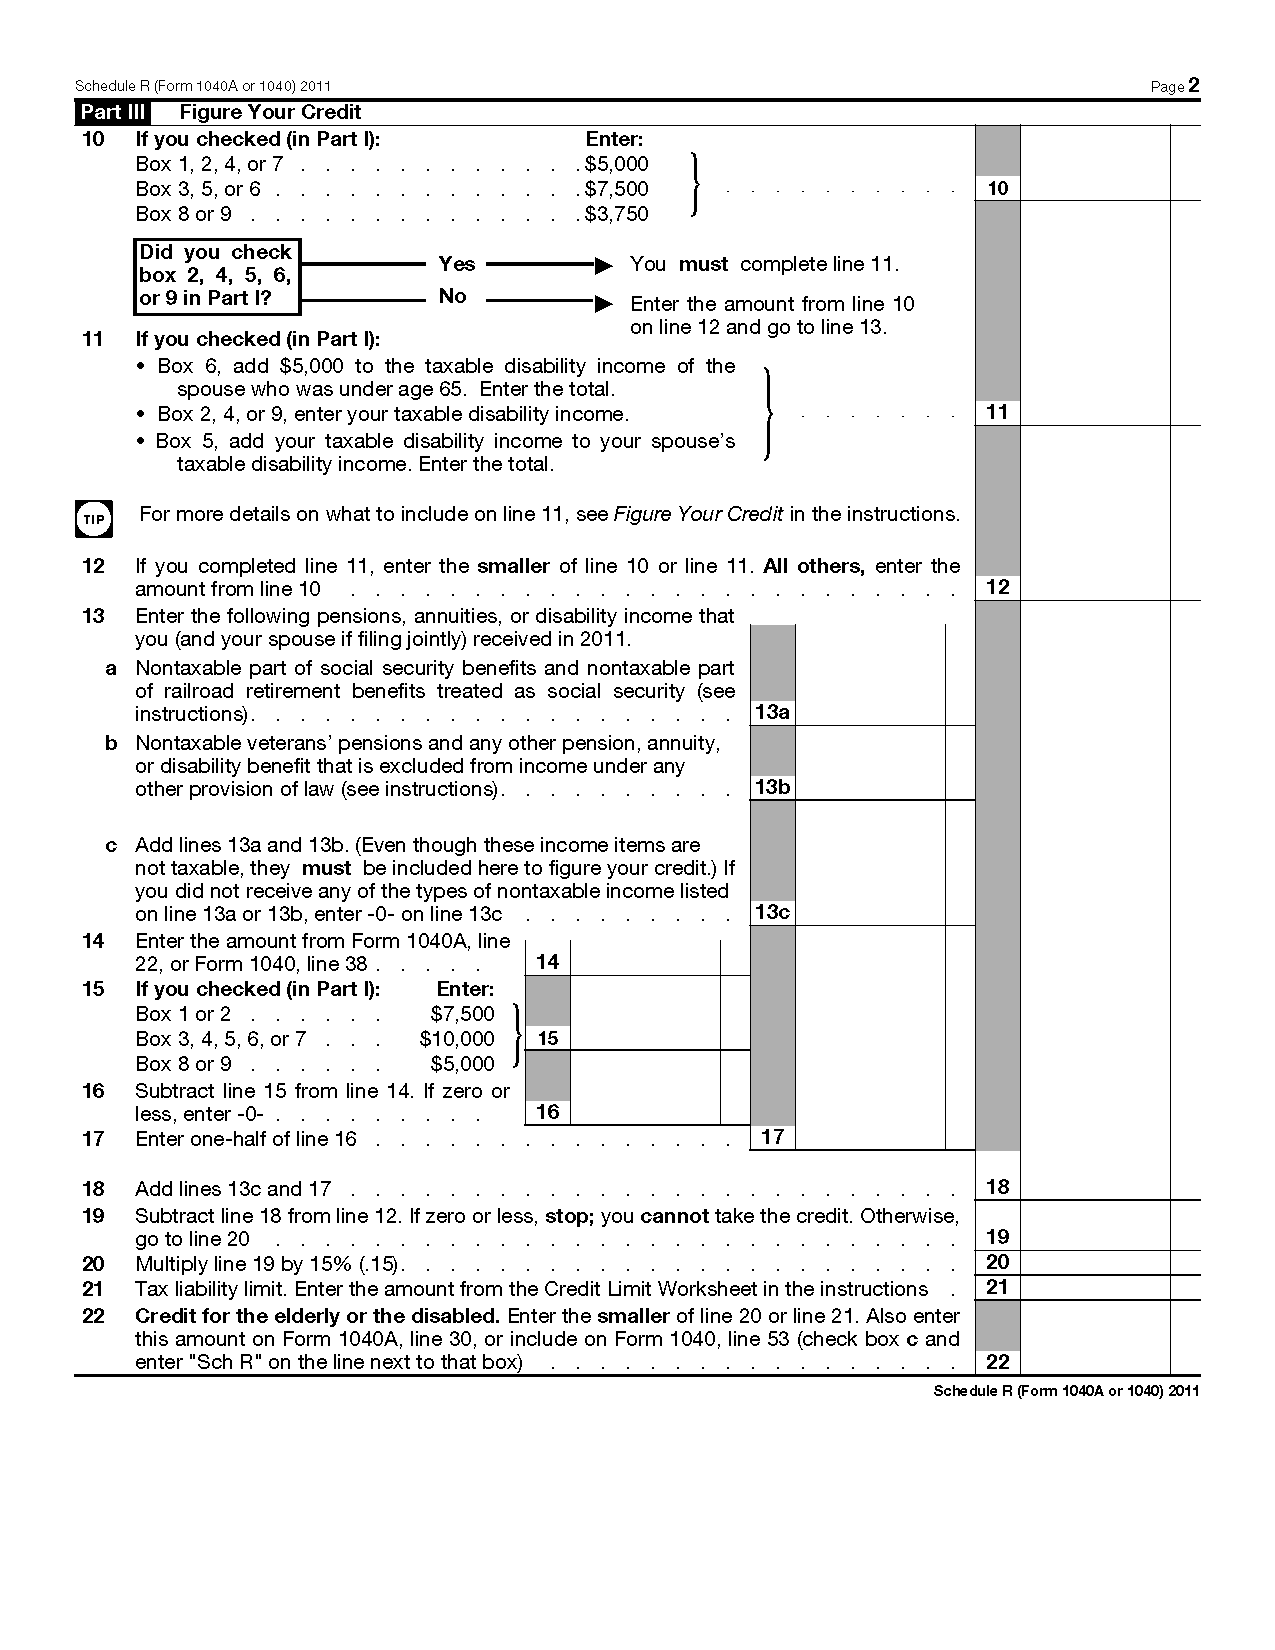 Form 1040 schedule r credit for the elderly or the disabled for 1040 tax table 2011